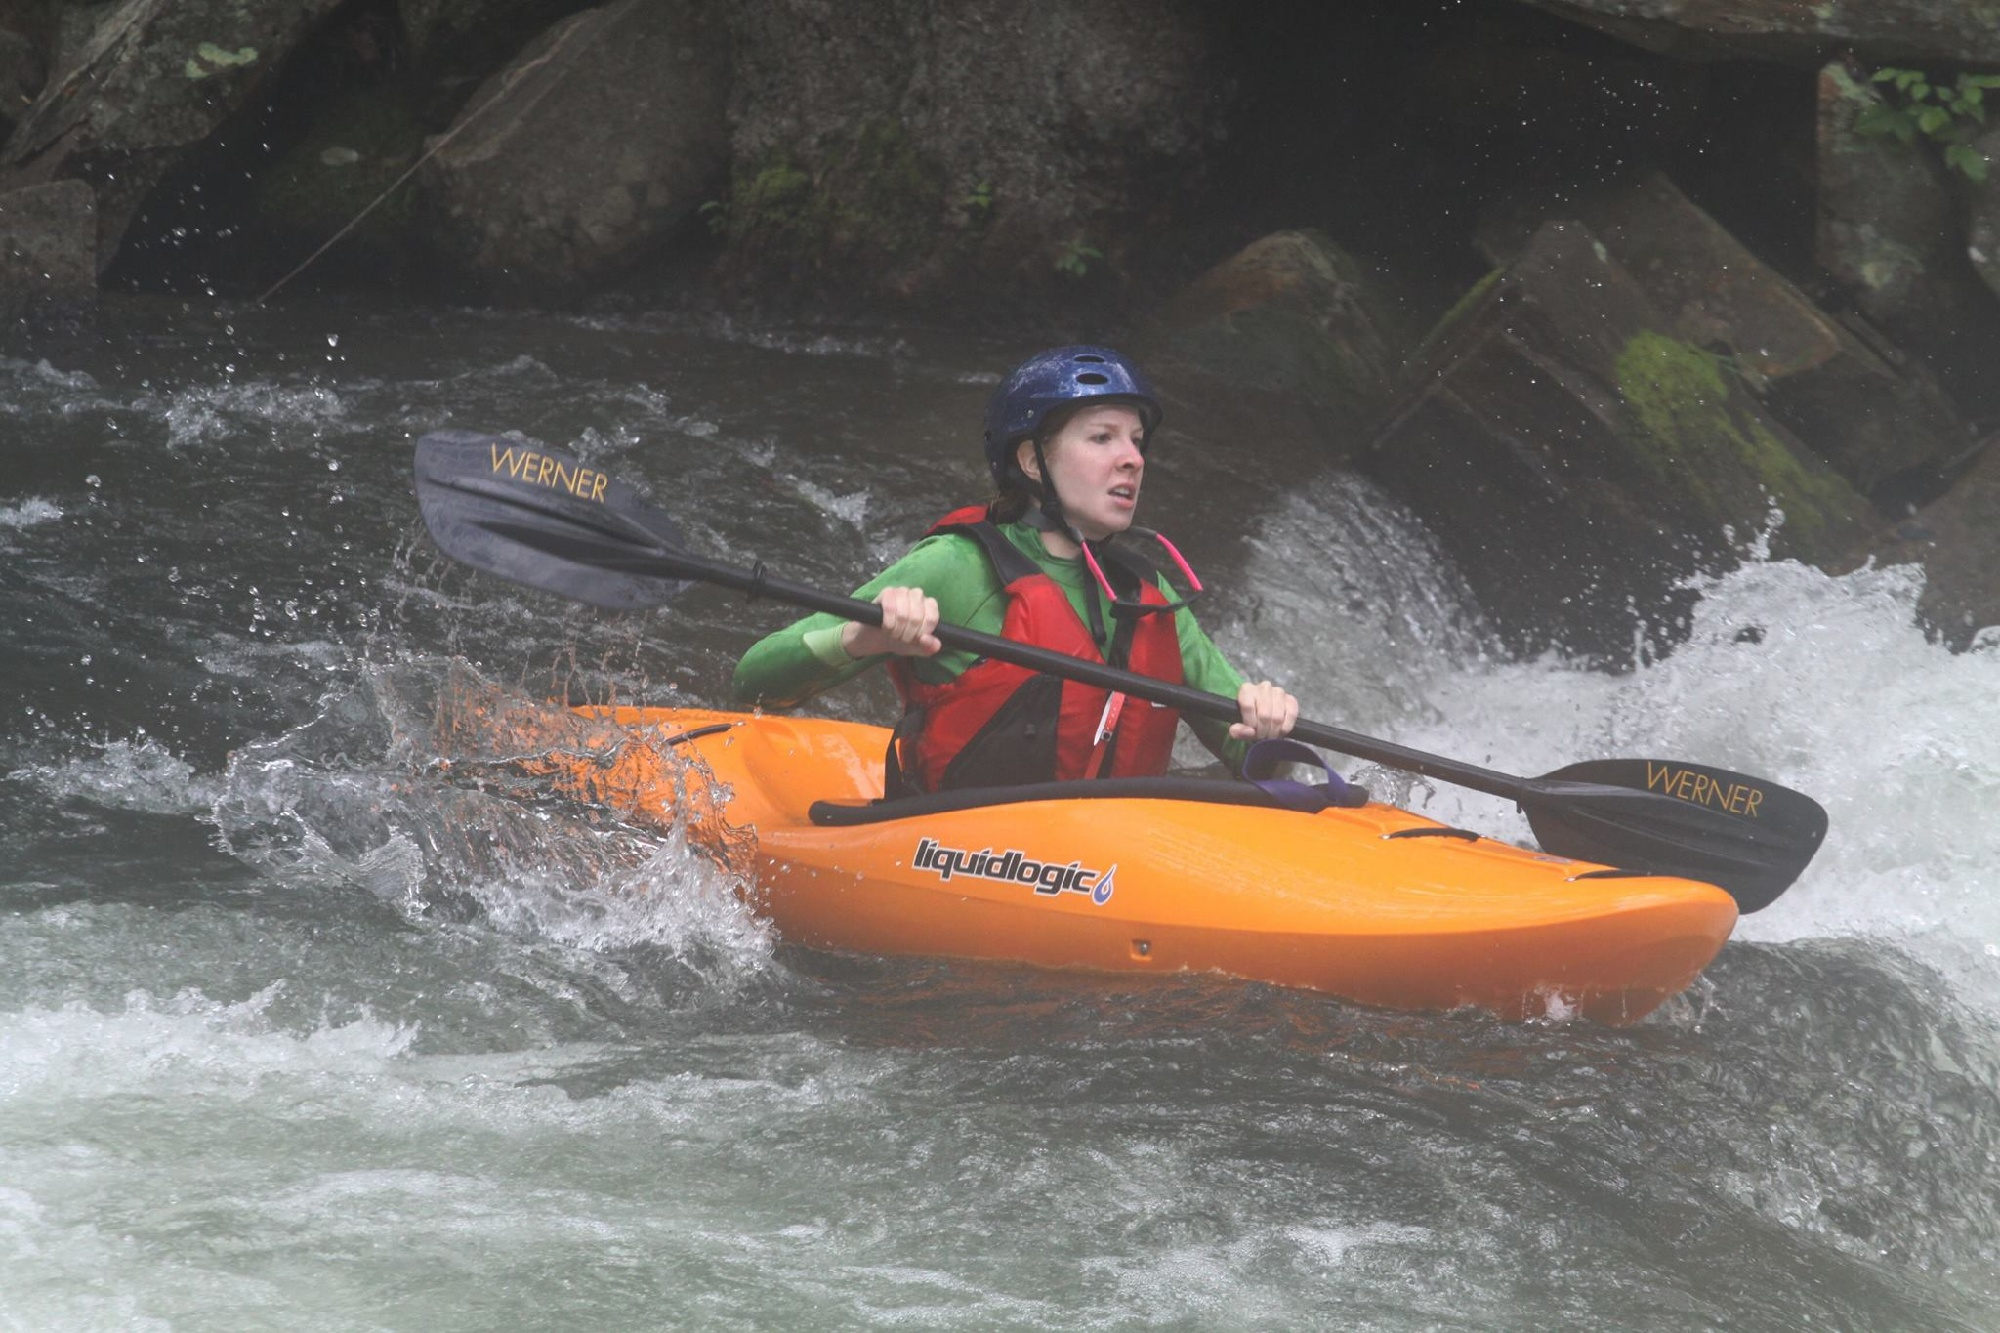 alison-and-whitewater-jpg-2214270-ver1-0.jpg